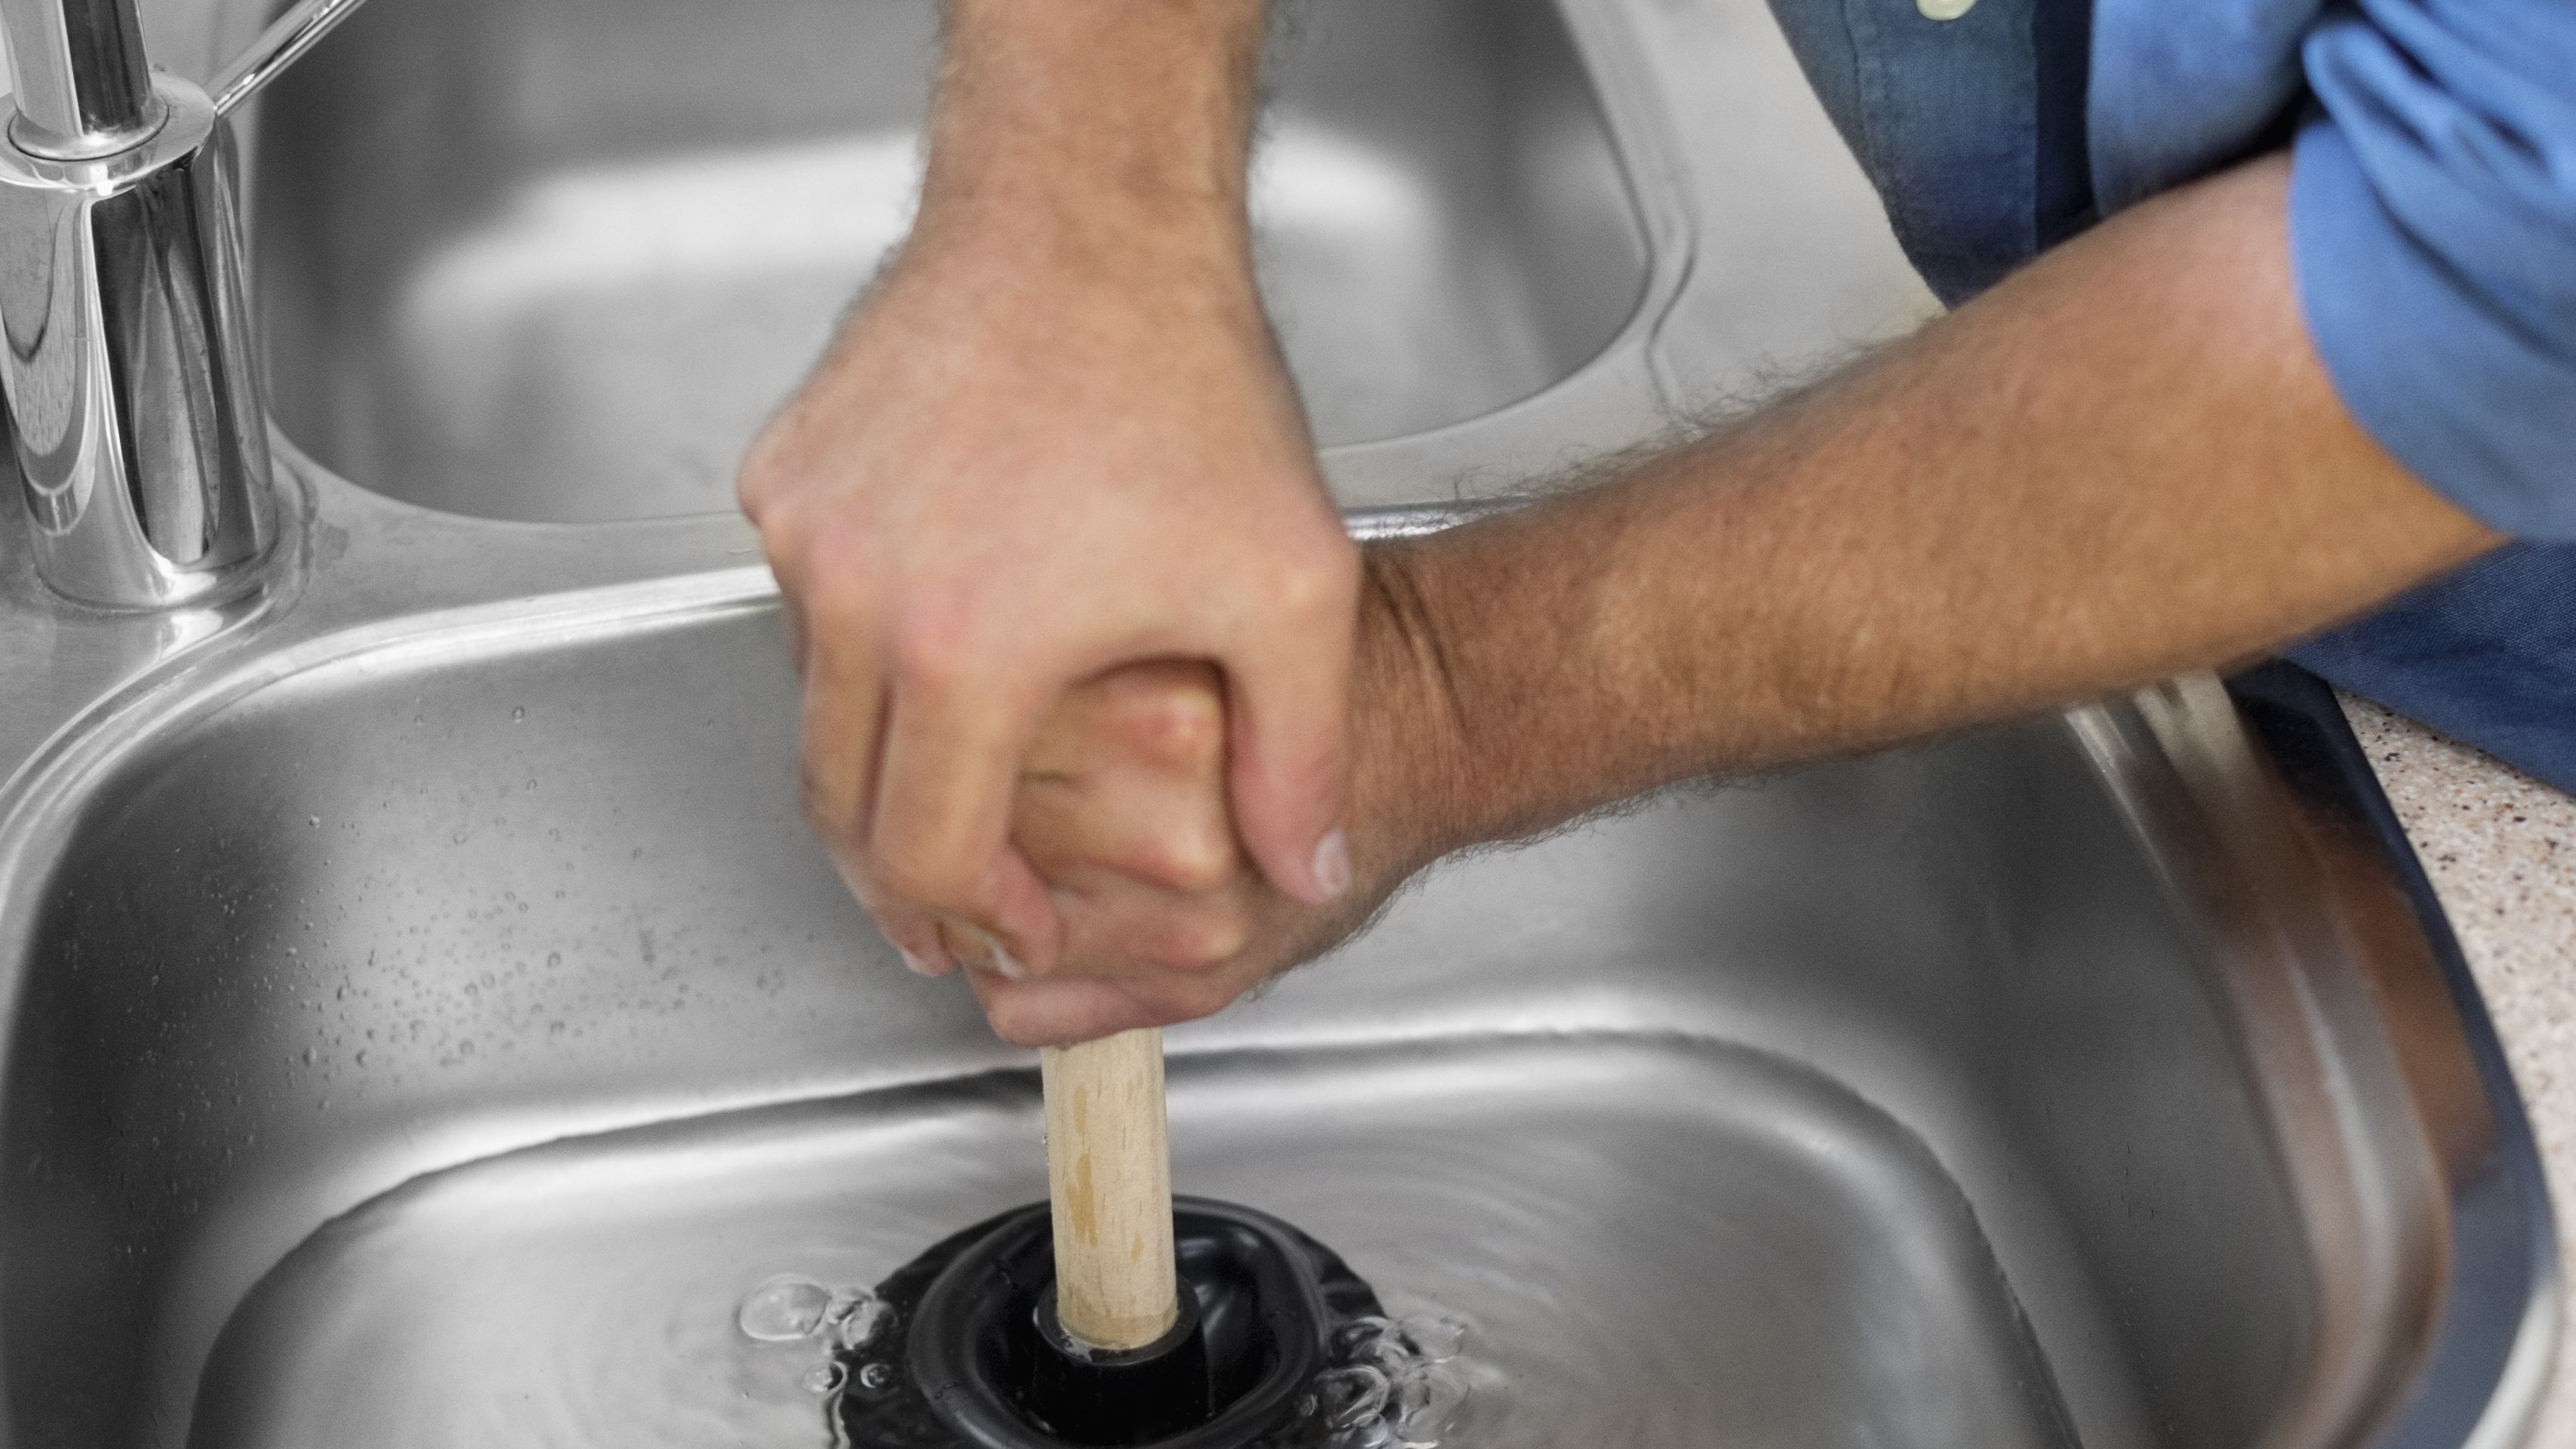 How To Unclog A Kitchen Sink Unclog Kitchen Sink With Plunger on unclog sinks both kitchen, unclog tub drain with bleach, unclog pipes, unclog my bathroom sink, unclog sink drain, toilet plunger,